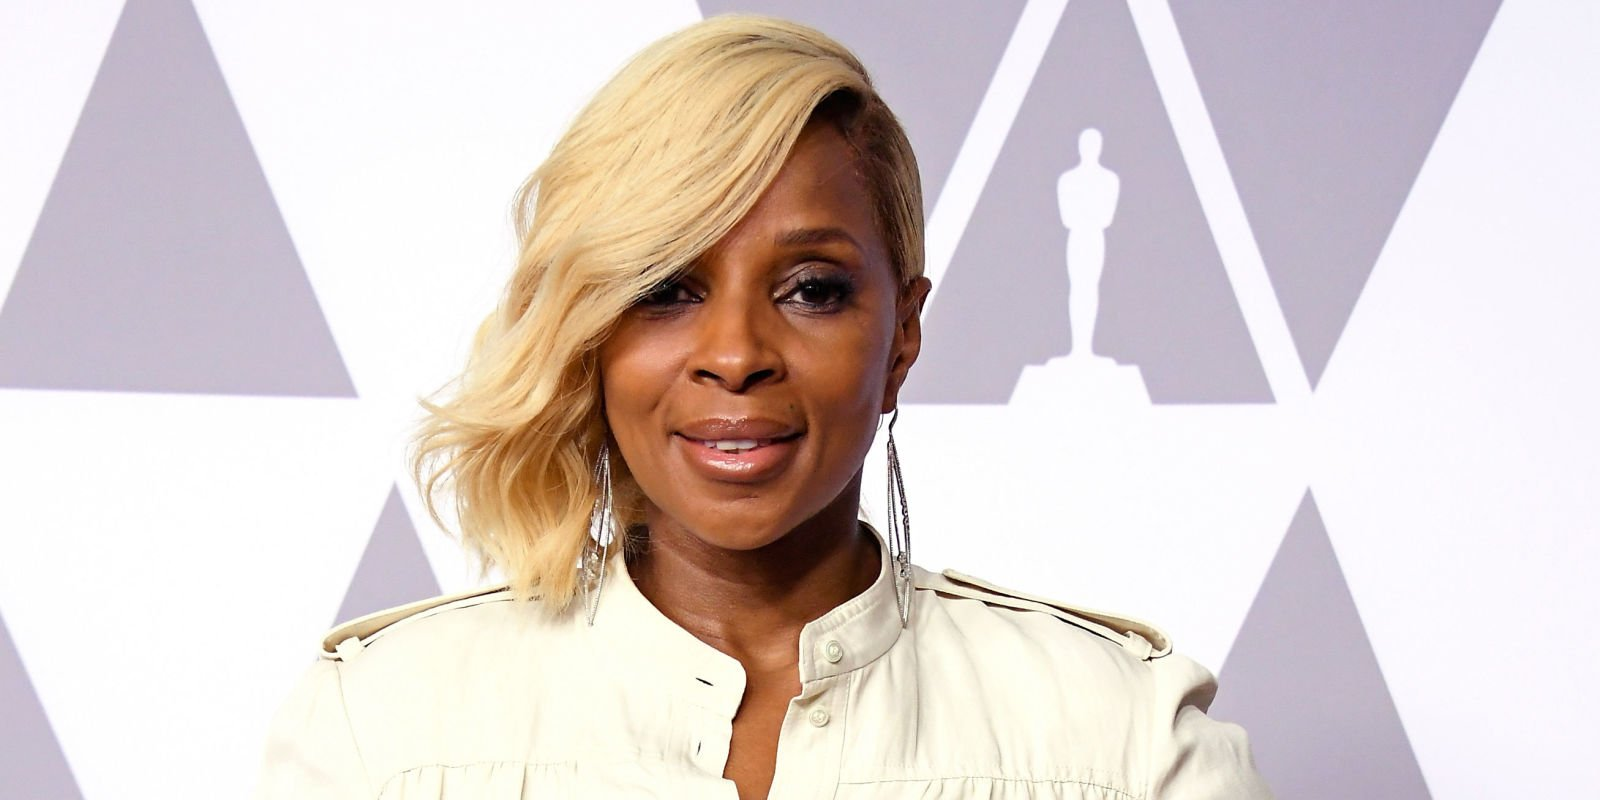 Mary J Blige will play a hitwoman in Netflix's The Umbrella Academy